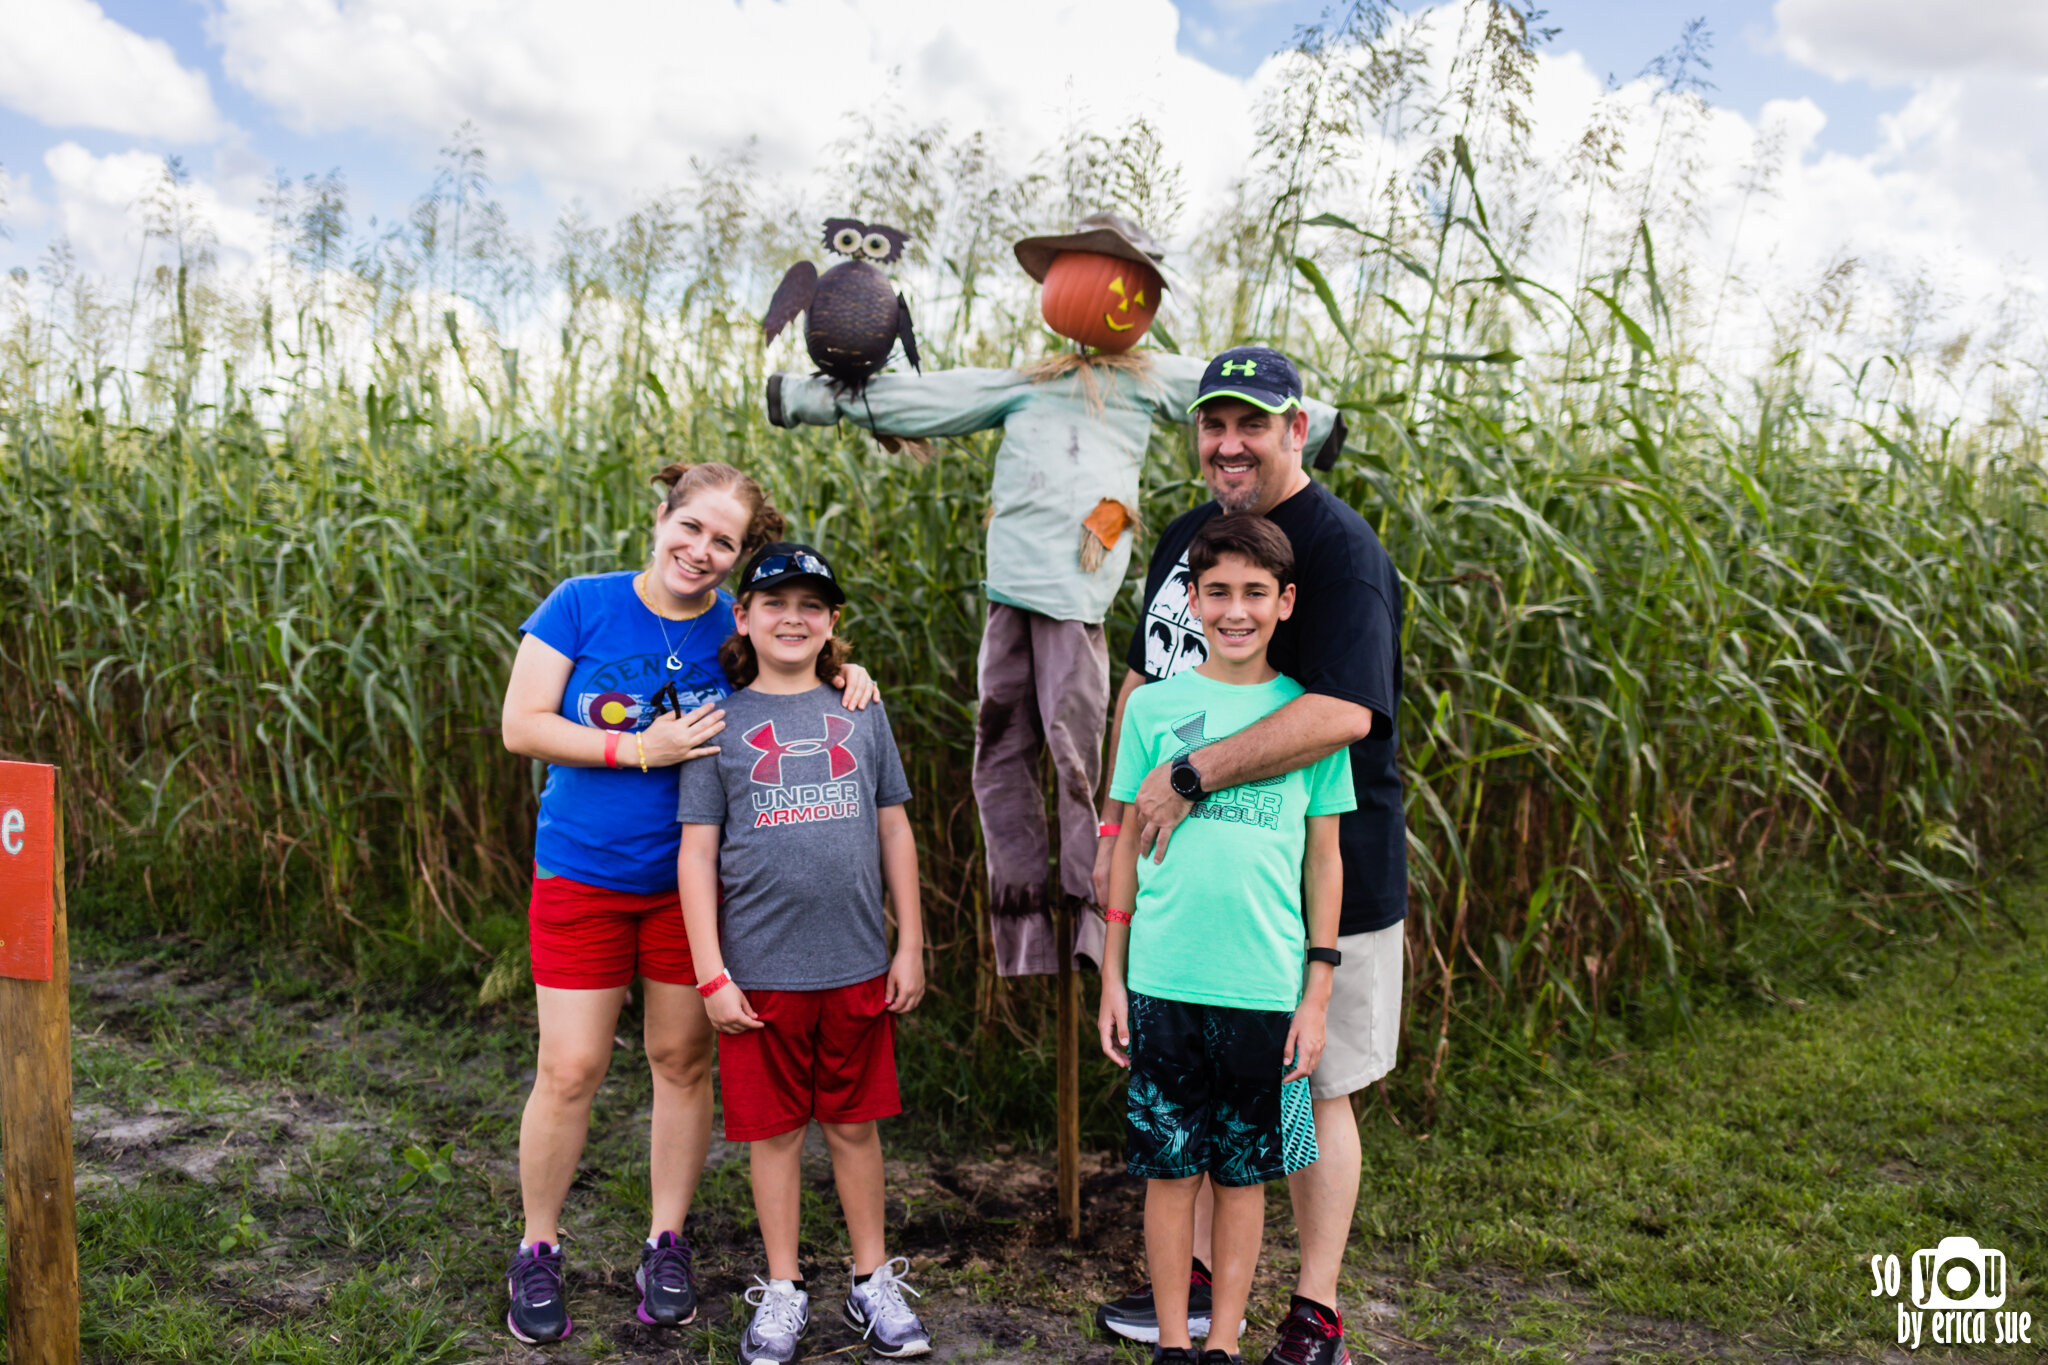 so-you-by-erica-sue-disney-photography-family-mickey-not-so-scary-partin-ranch-corn-maze-old-town-orlando-4244.jpg